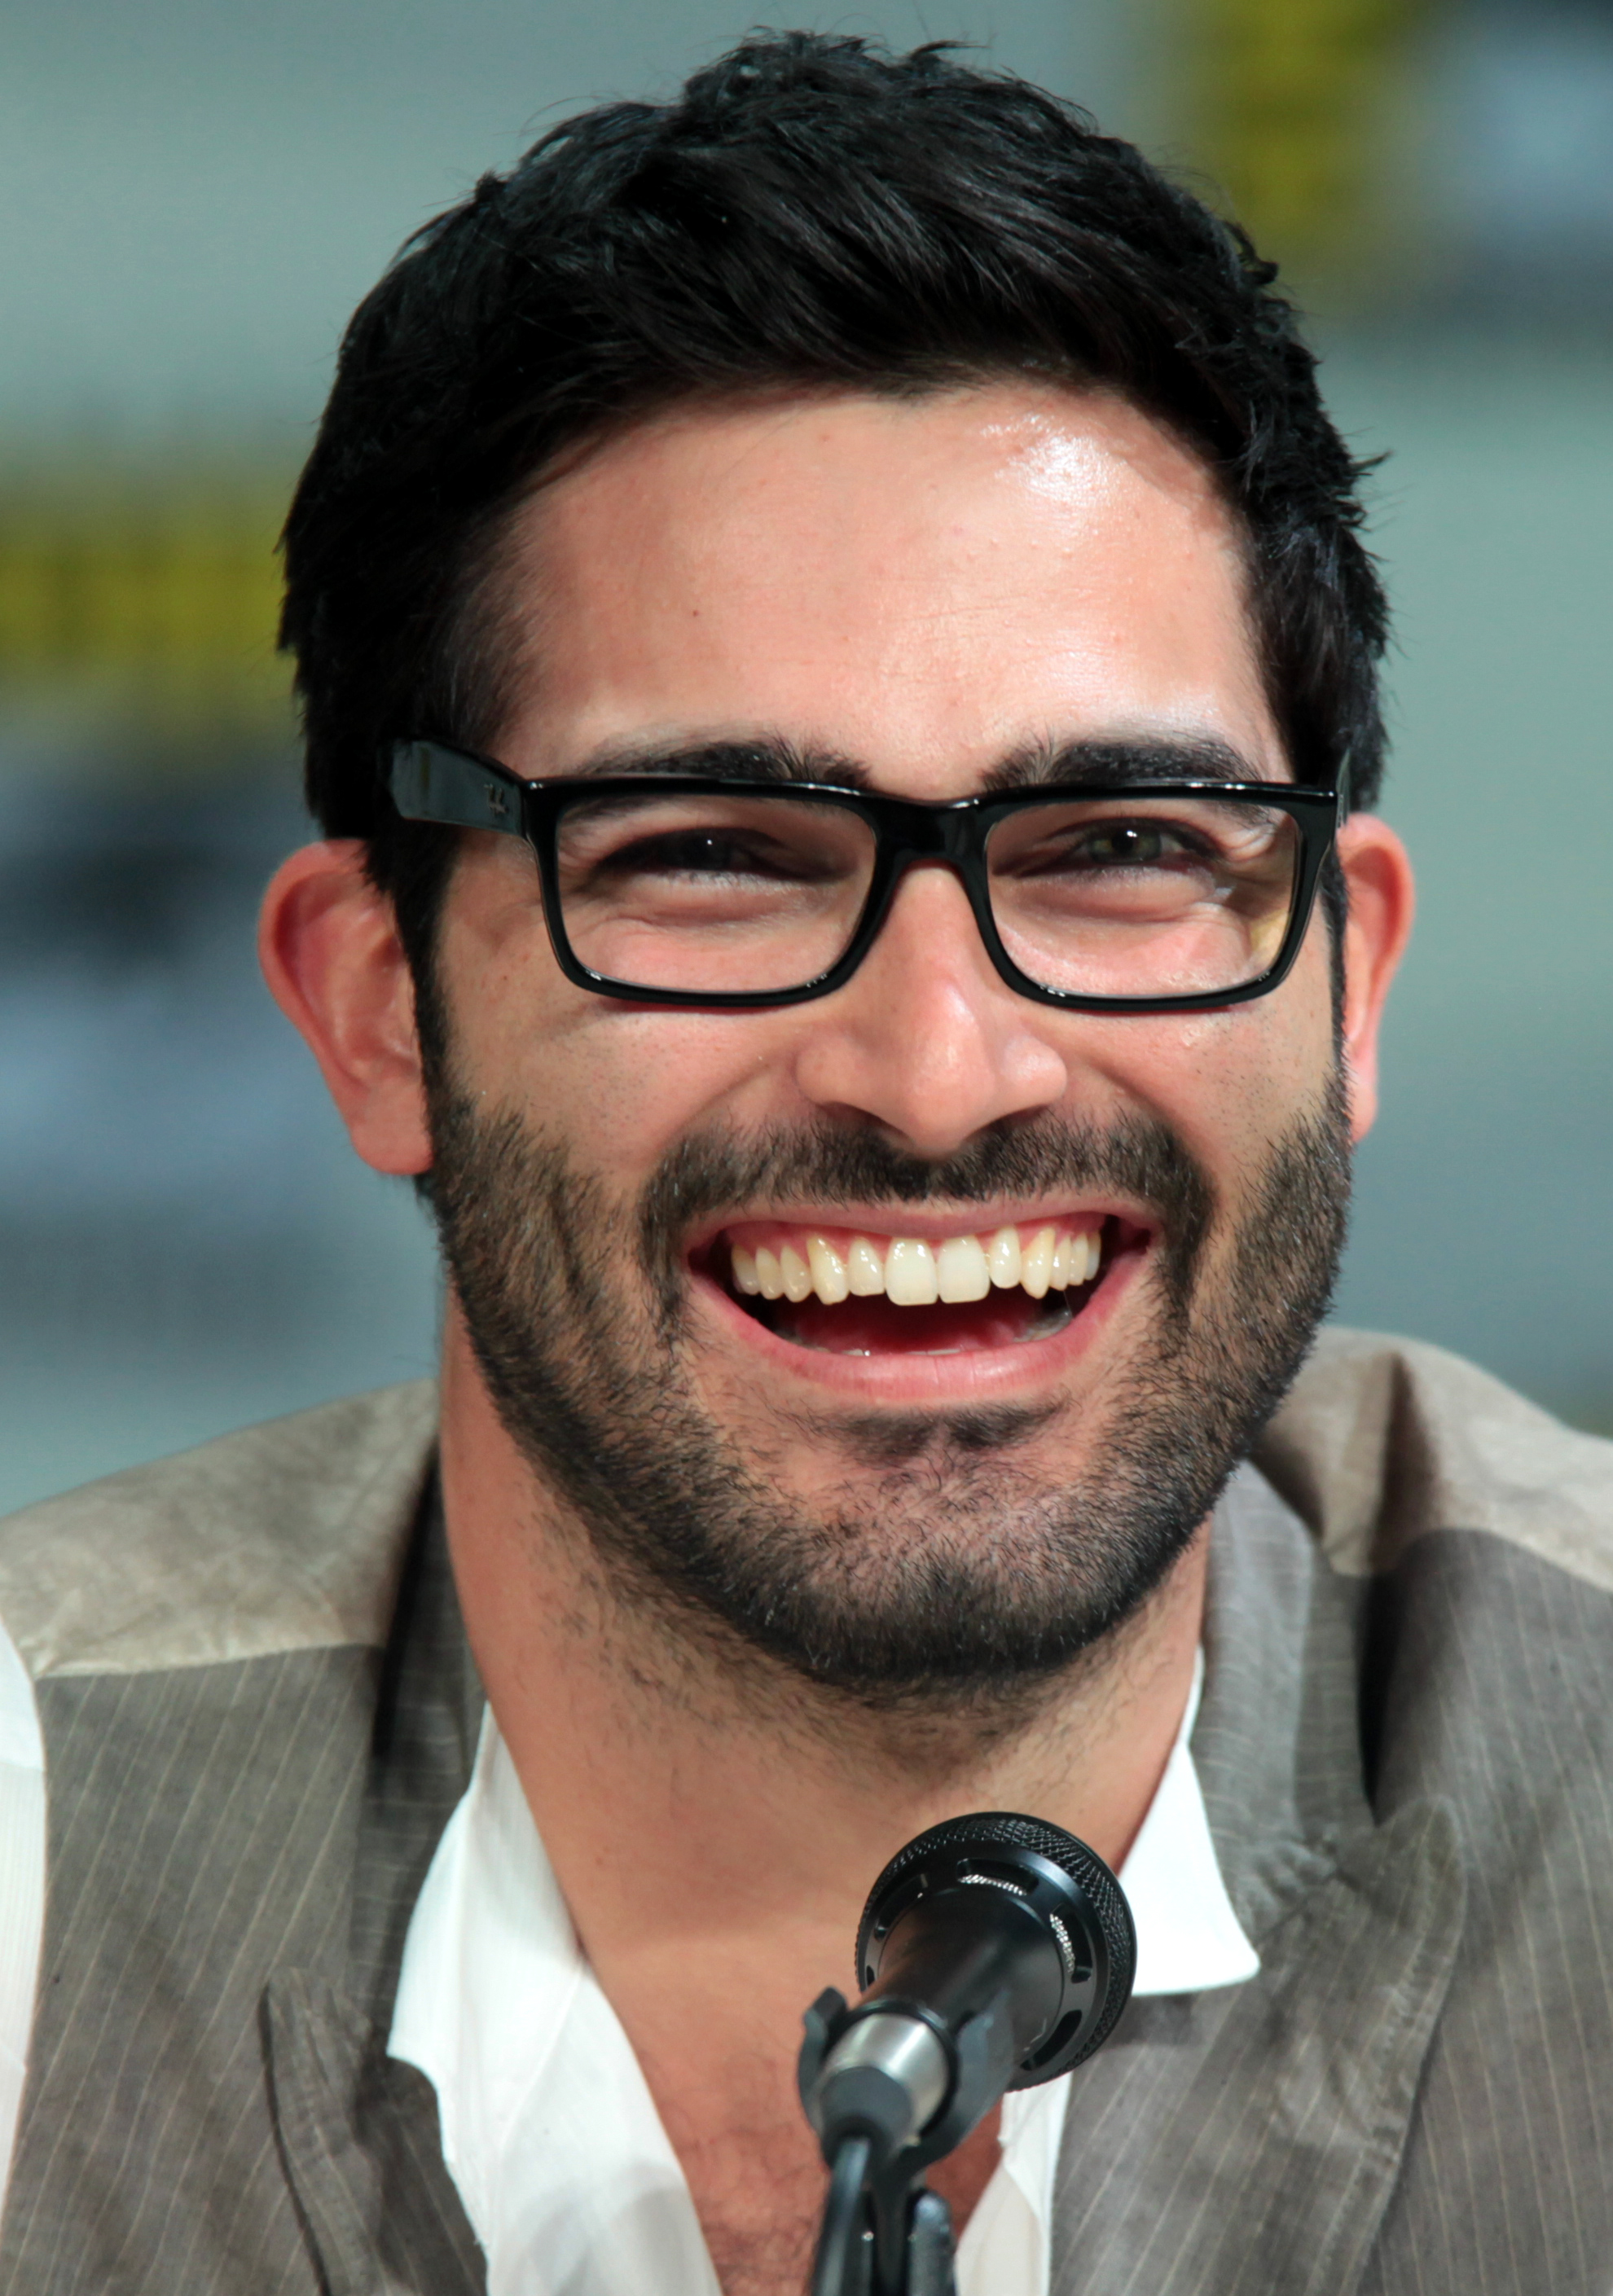 The 31-year old son of father Don Hoechlin and mother Lori Hoechlin Tyler Hoechlin in 2018 photo. Tyler Hoechlin earned a  million dollar salary - leaving the net worth at 0.8 million in 2018